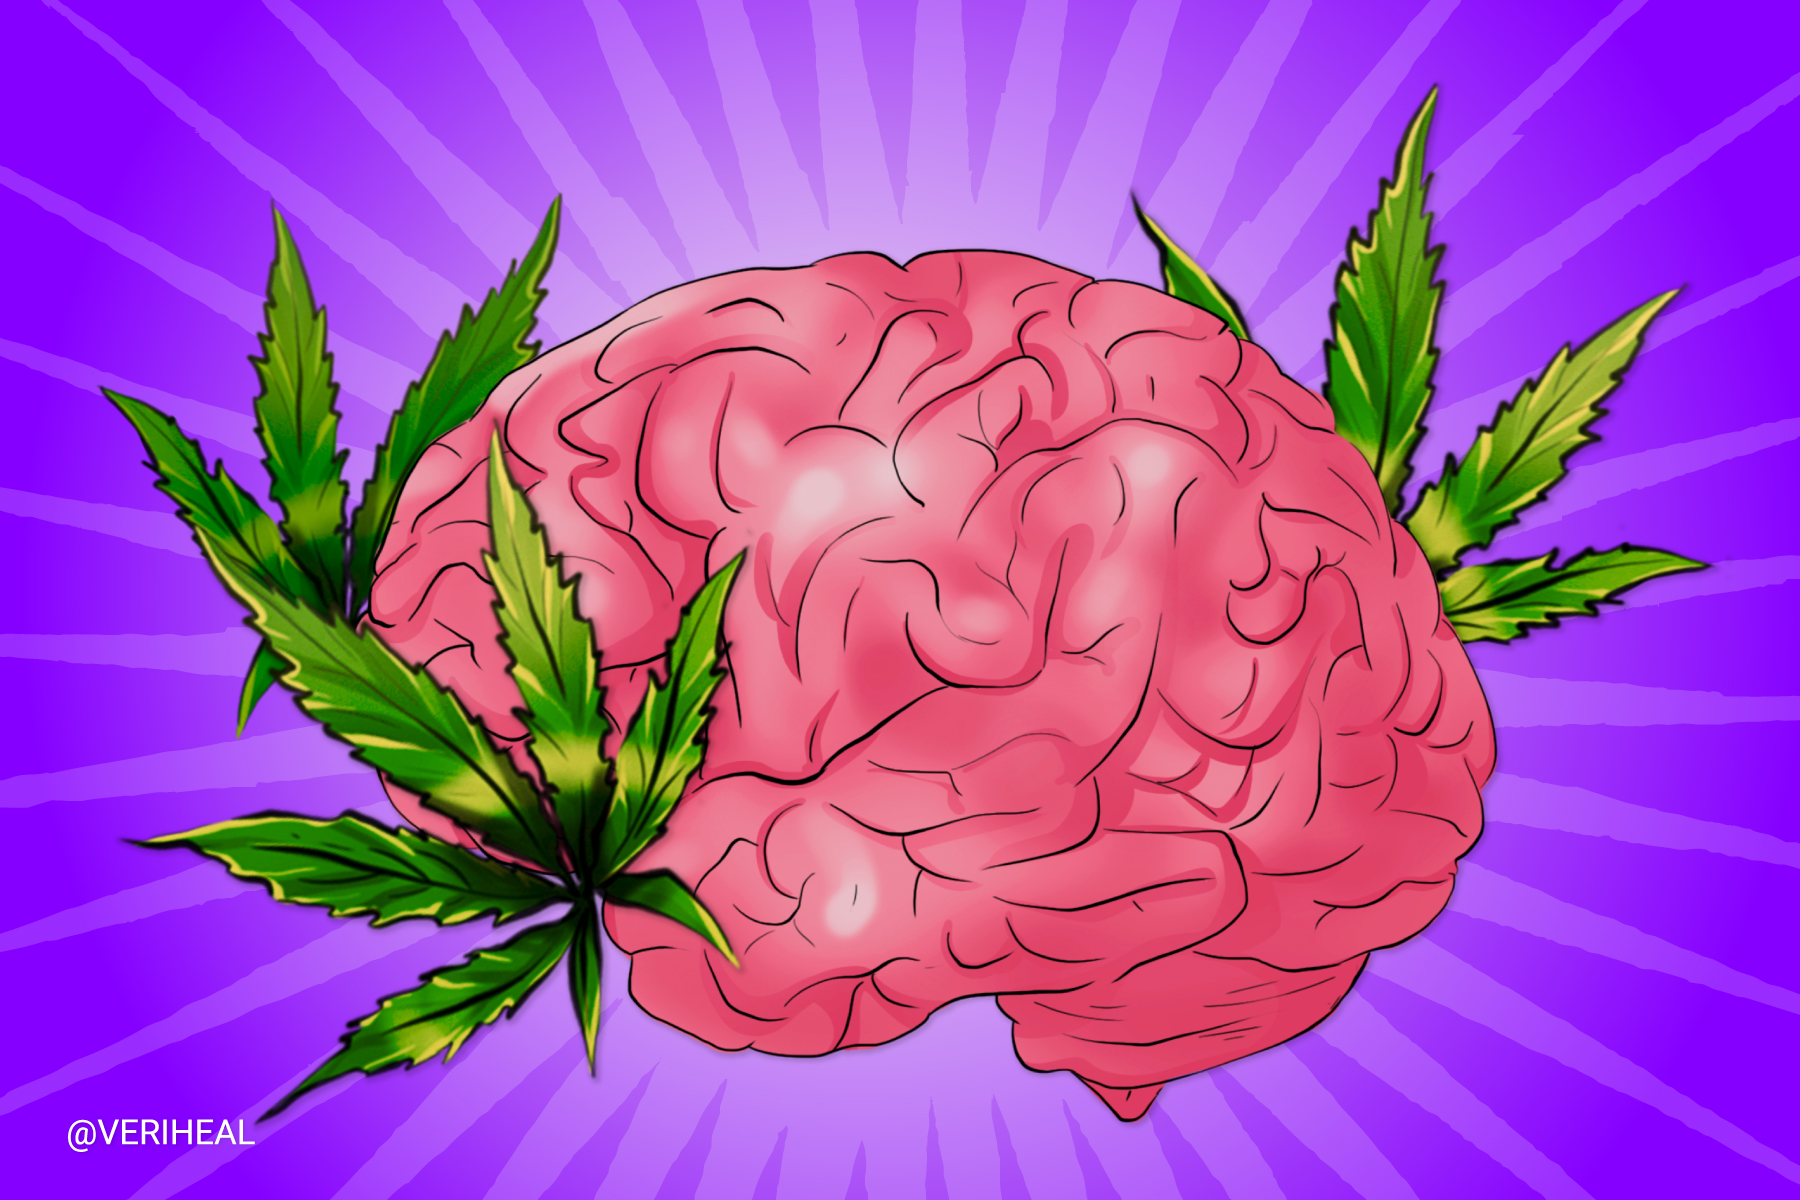 Scientists Say That Cannabis Won't Reduce Brain Cortical Thickness